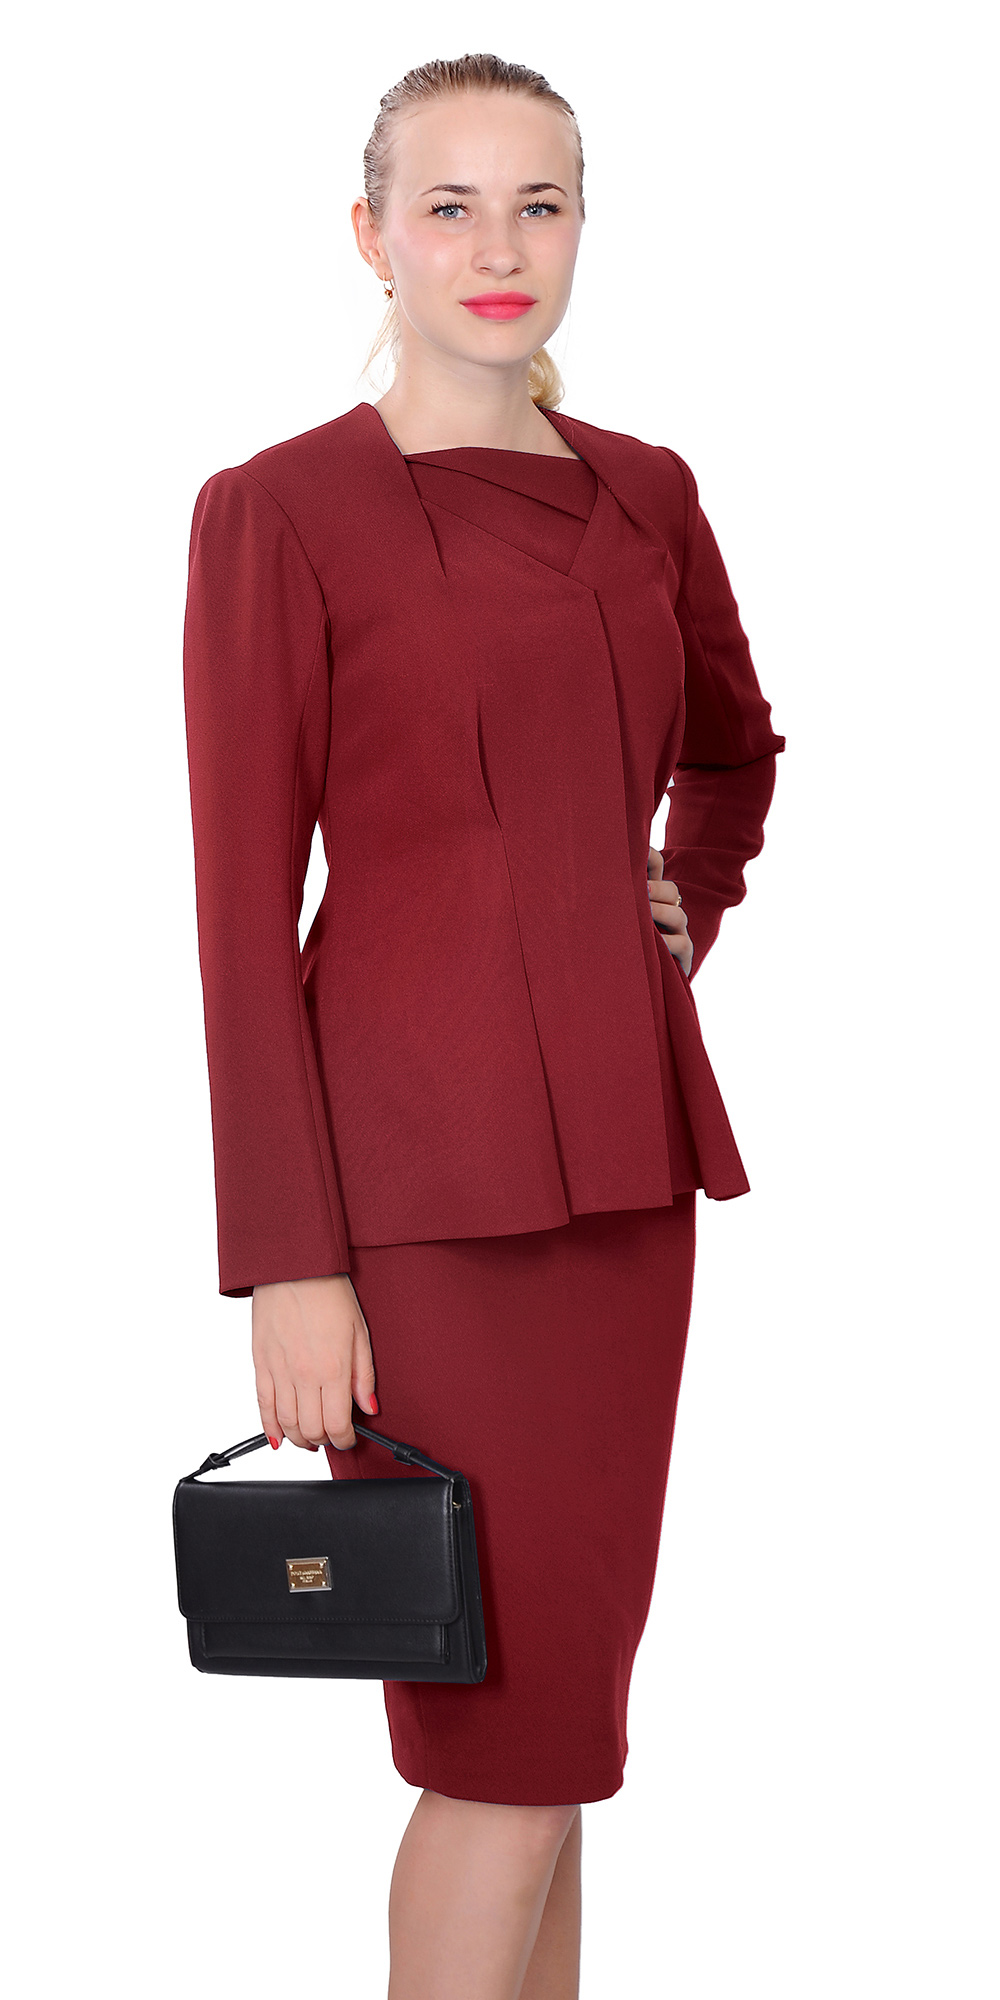 Burgundy Dress Suits For Women Www Topsimages Com